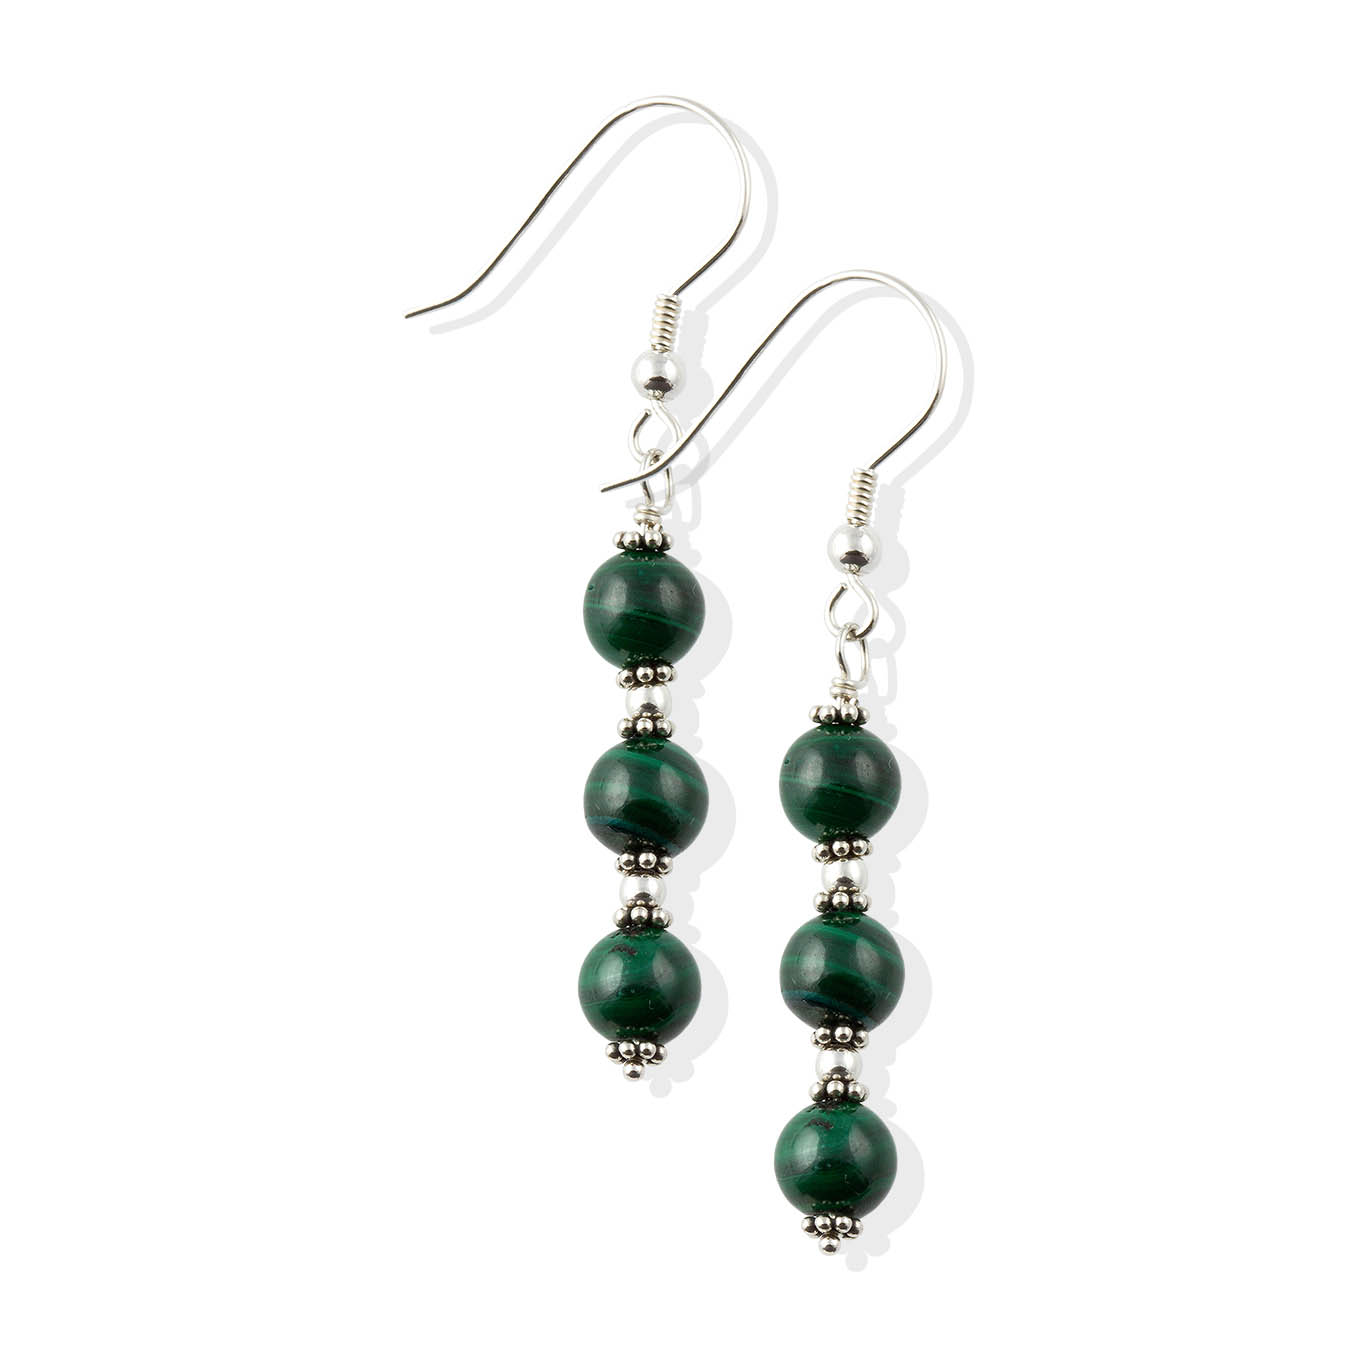 Handcrafted classic bead jewelry made with malachite and bali silver